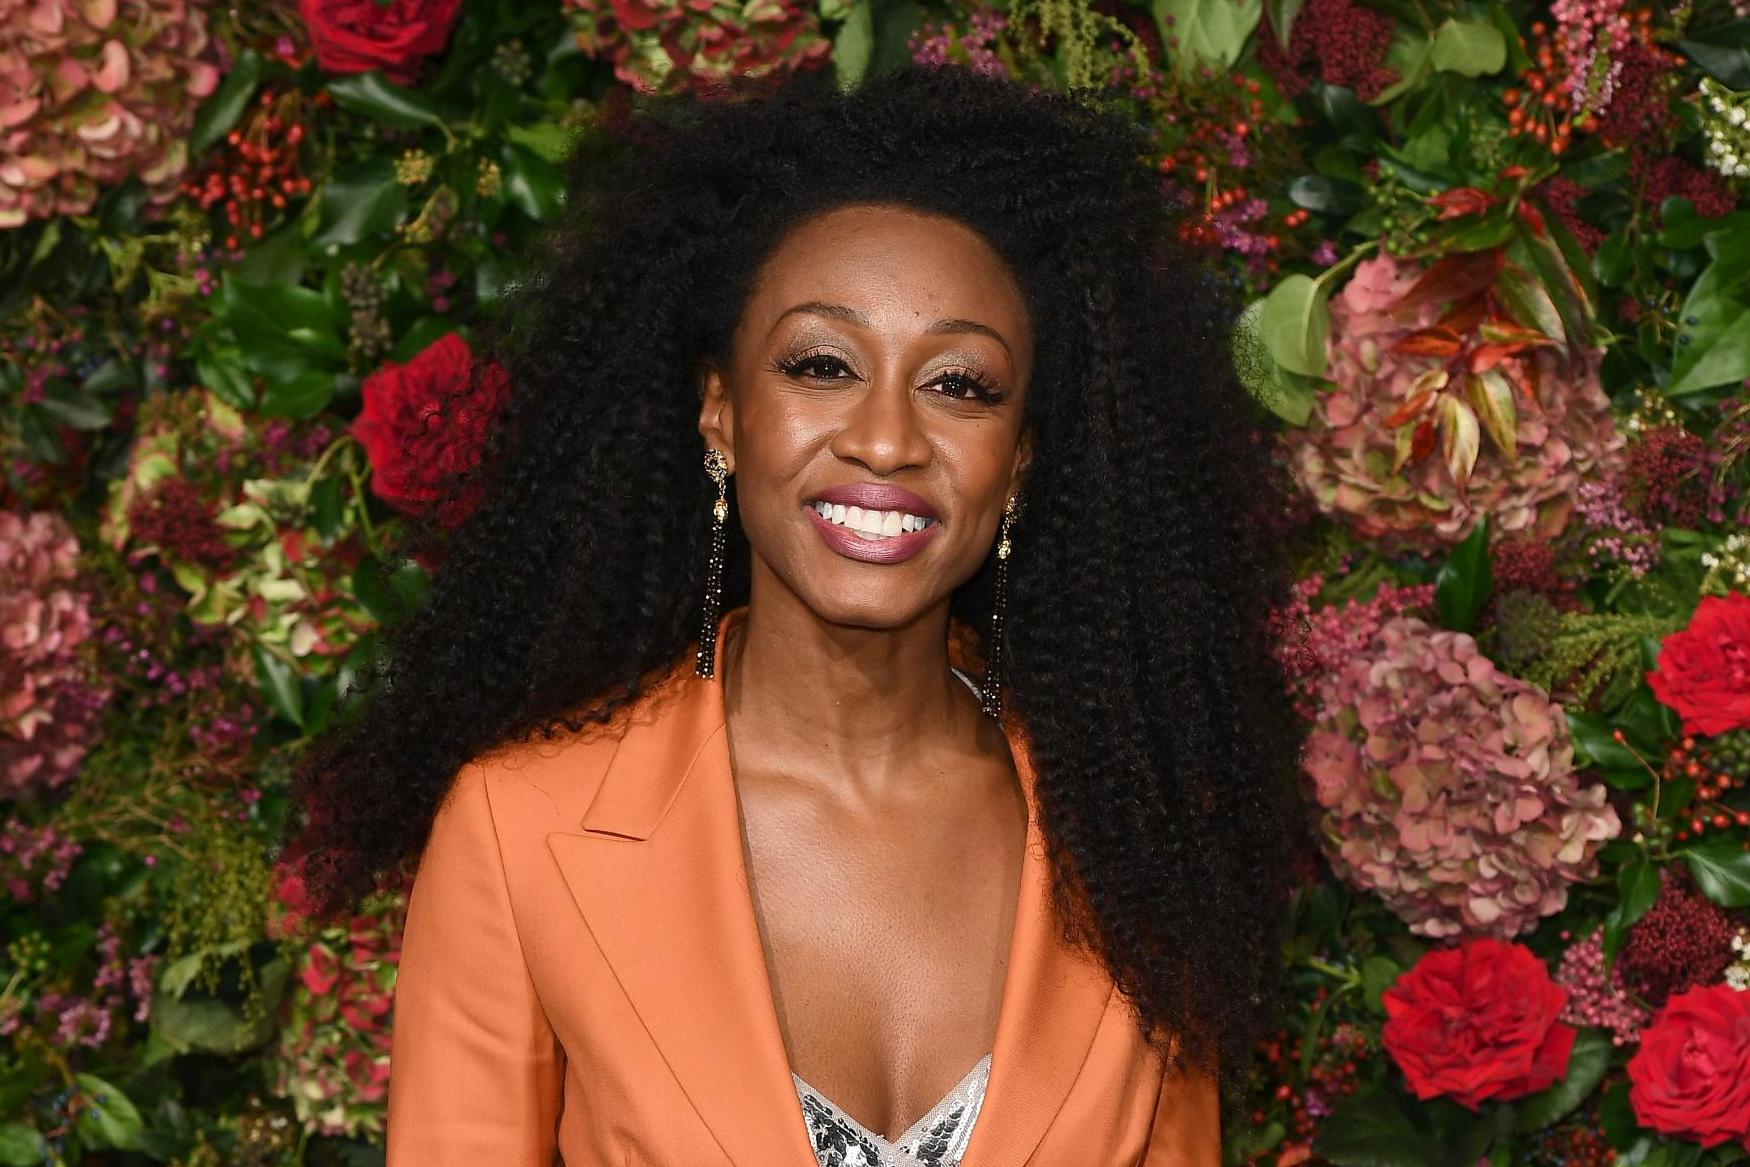 Singer Beverley Knight felt she was 'maybe too dark' for success in music industry